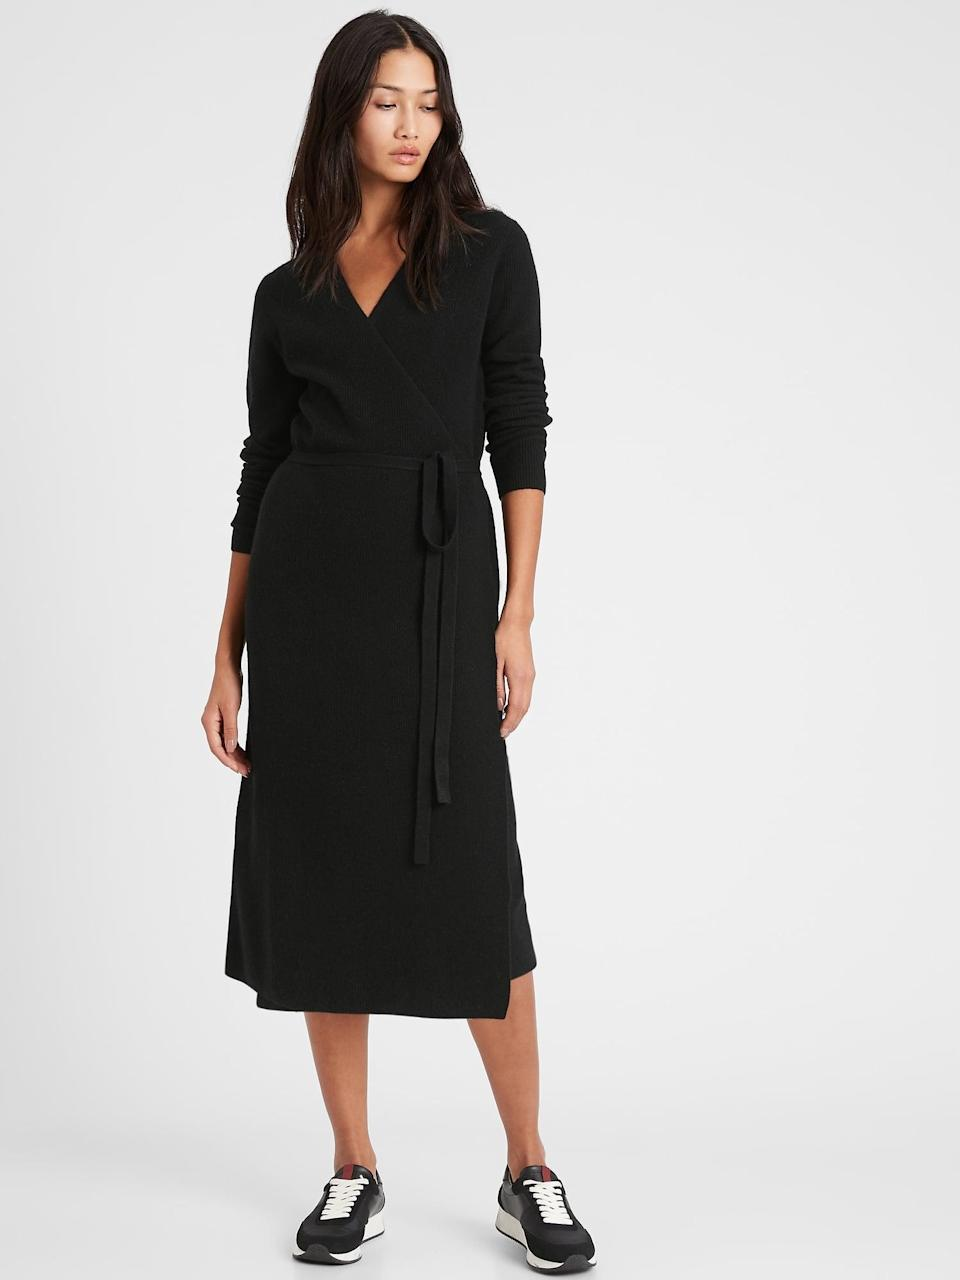 <p>As DVF discovered in the 70s, the wrap dress is a flattering style for every woman. I love the cozy, recycled knit of this <span>Banana Republic Wrap Sweater Dress</span> ($97, originally $139).</p>